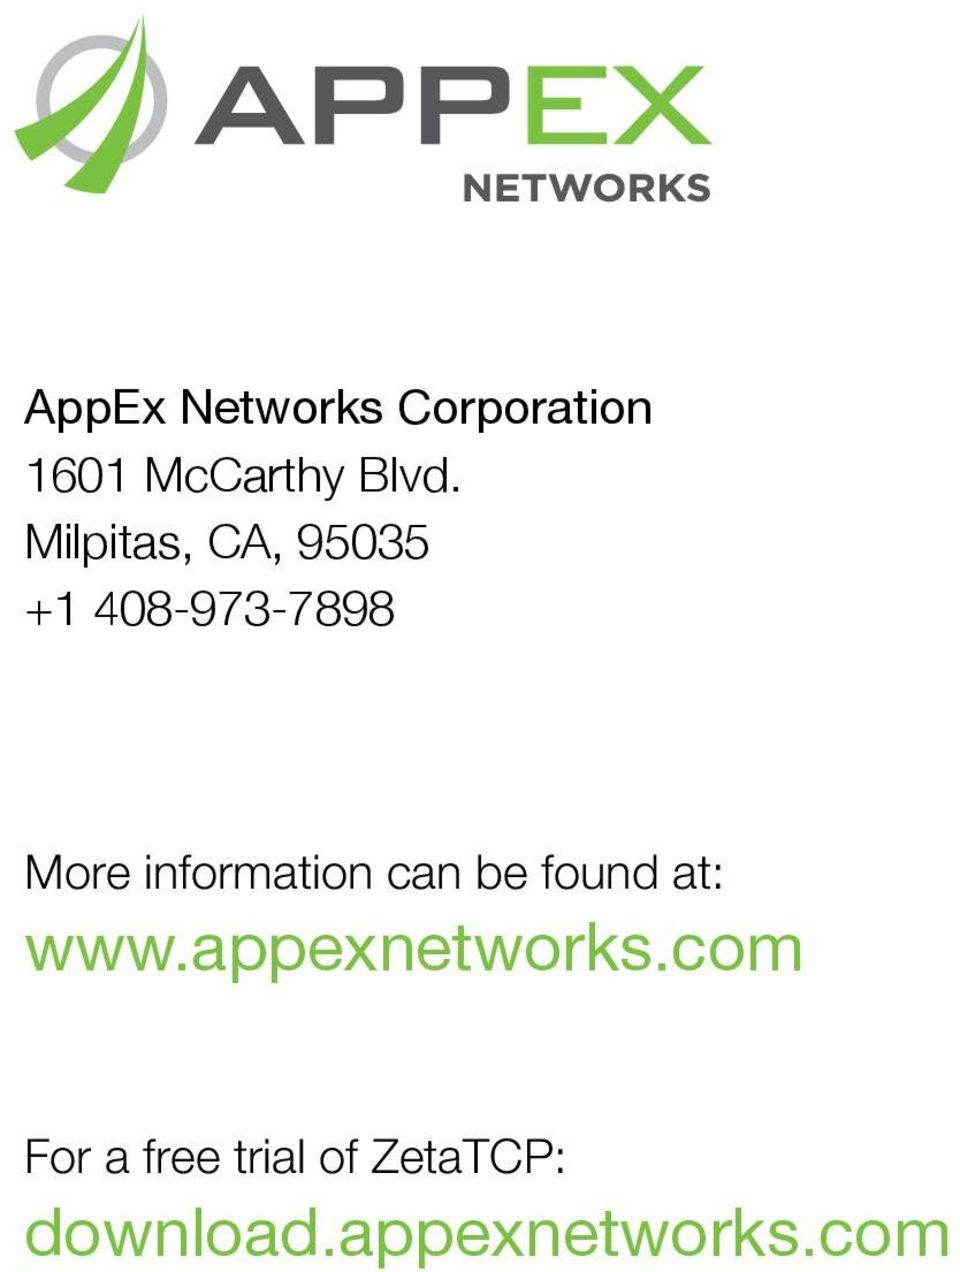 information can be found at: www.appexnetworks.